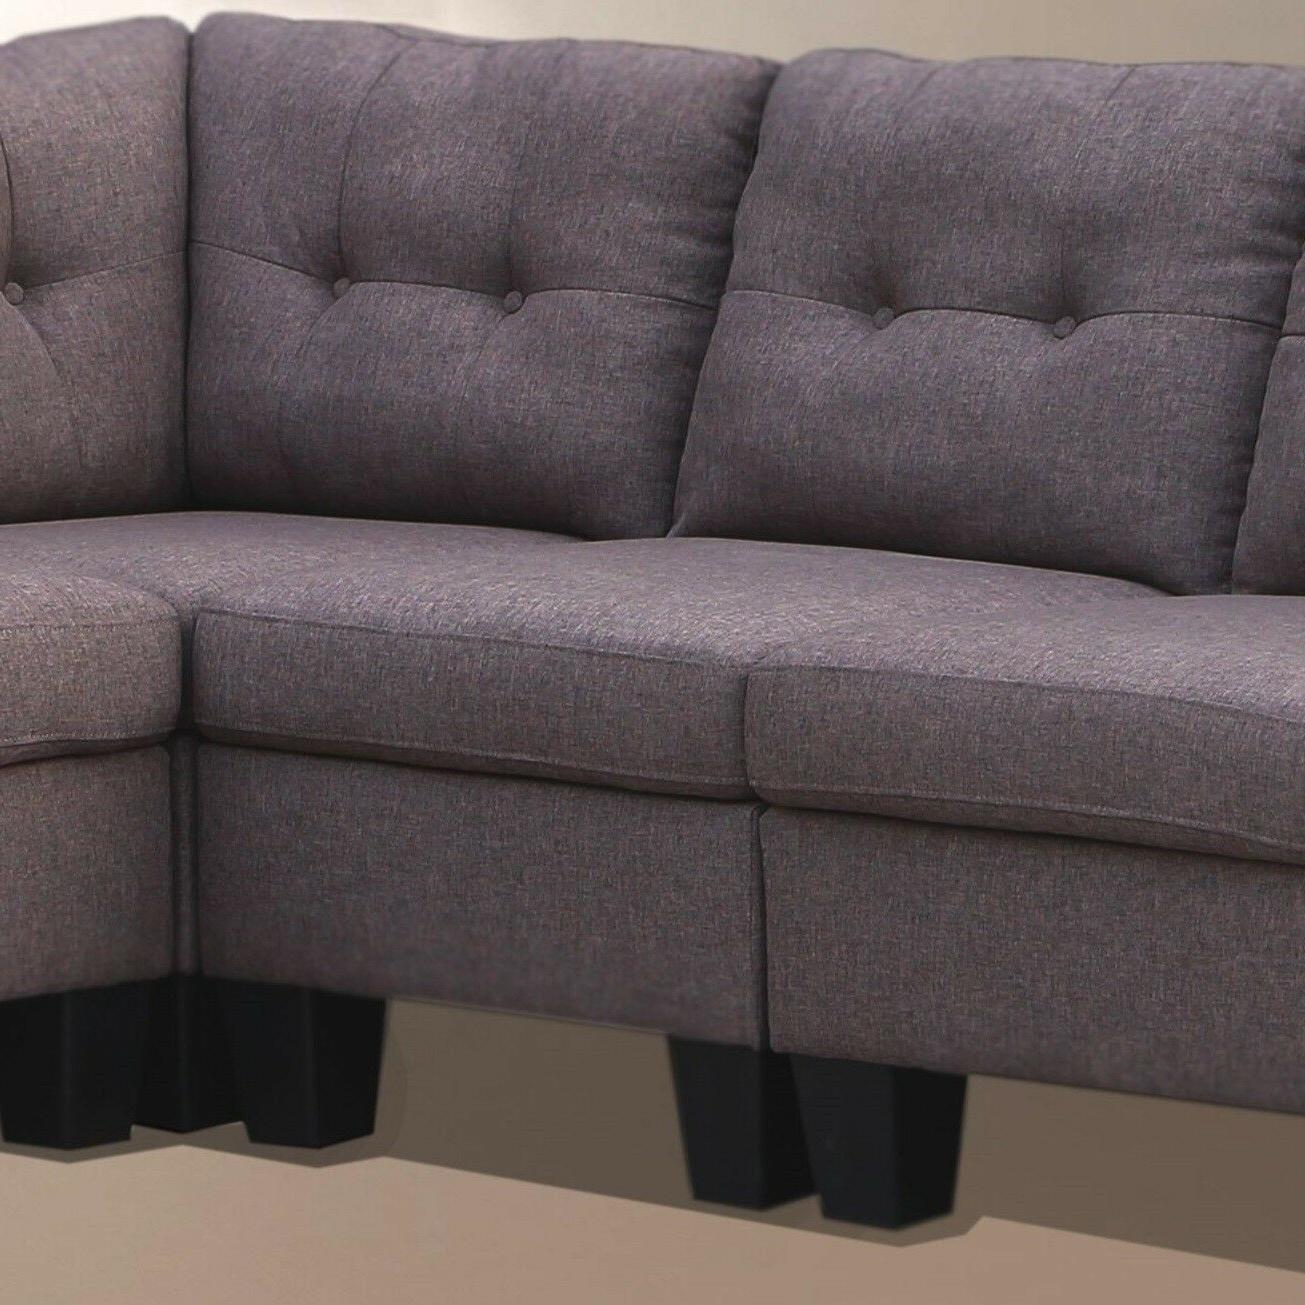 4pcs Sectional Modern Casual Armless Chair Corner